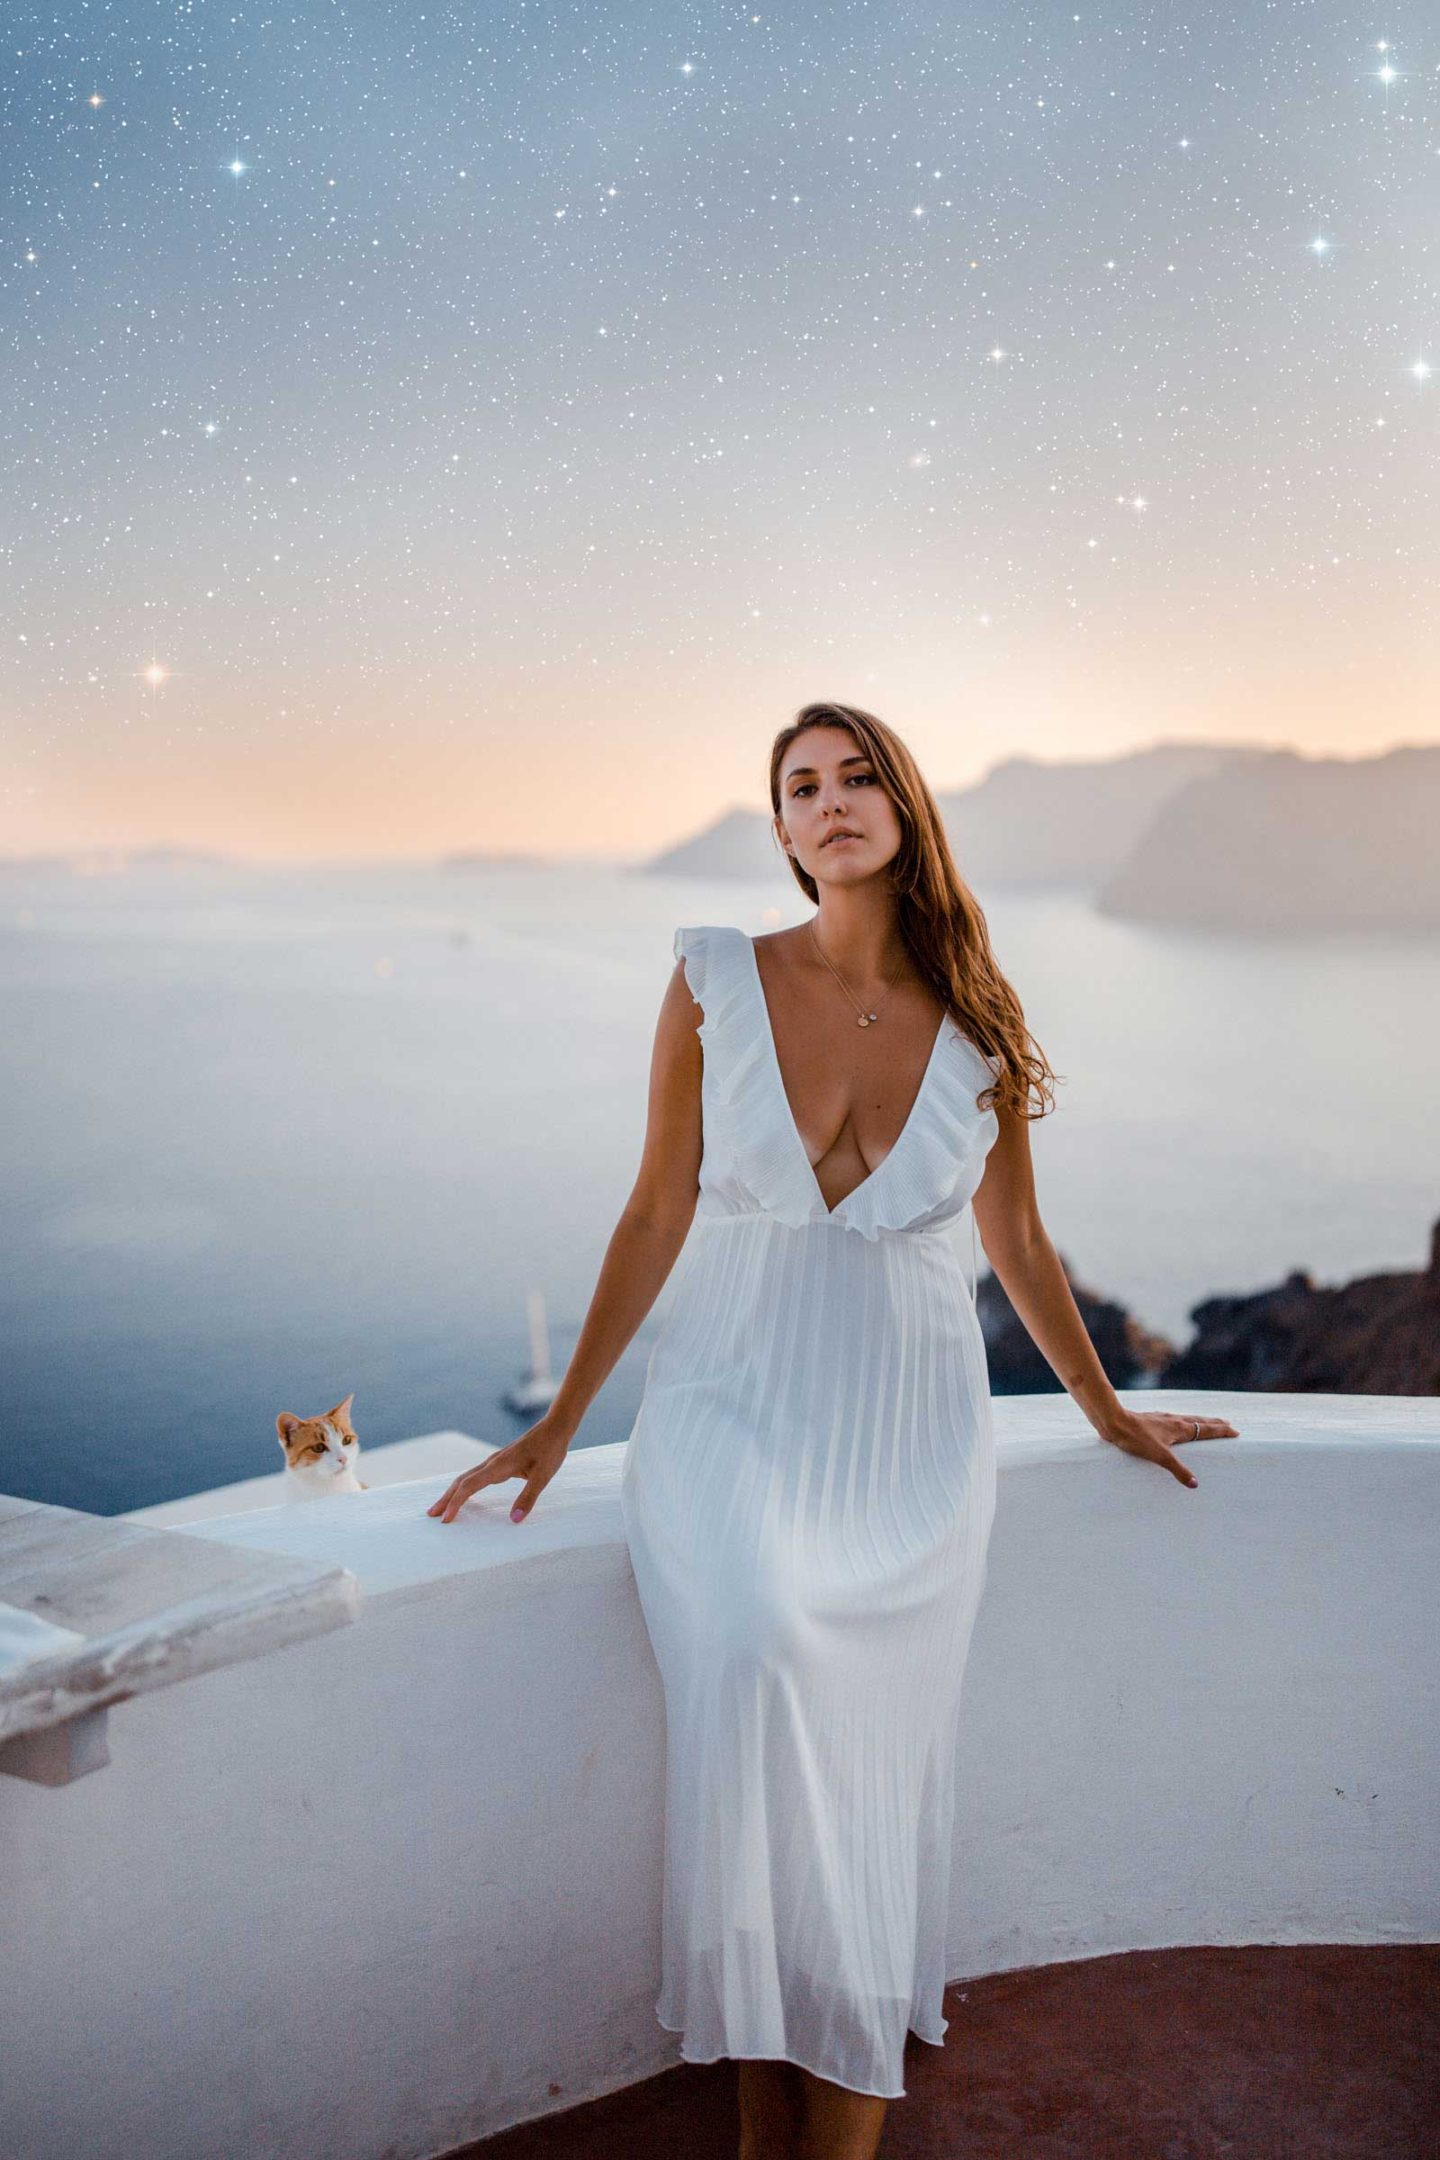 I will show you how to add Stars fast and easy. Photoshop Tutorial under 5 simple steps! Perfect for adding stars to your Instagram photos. Photoshop tutorial for beginners. Santorini Sunset